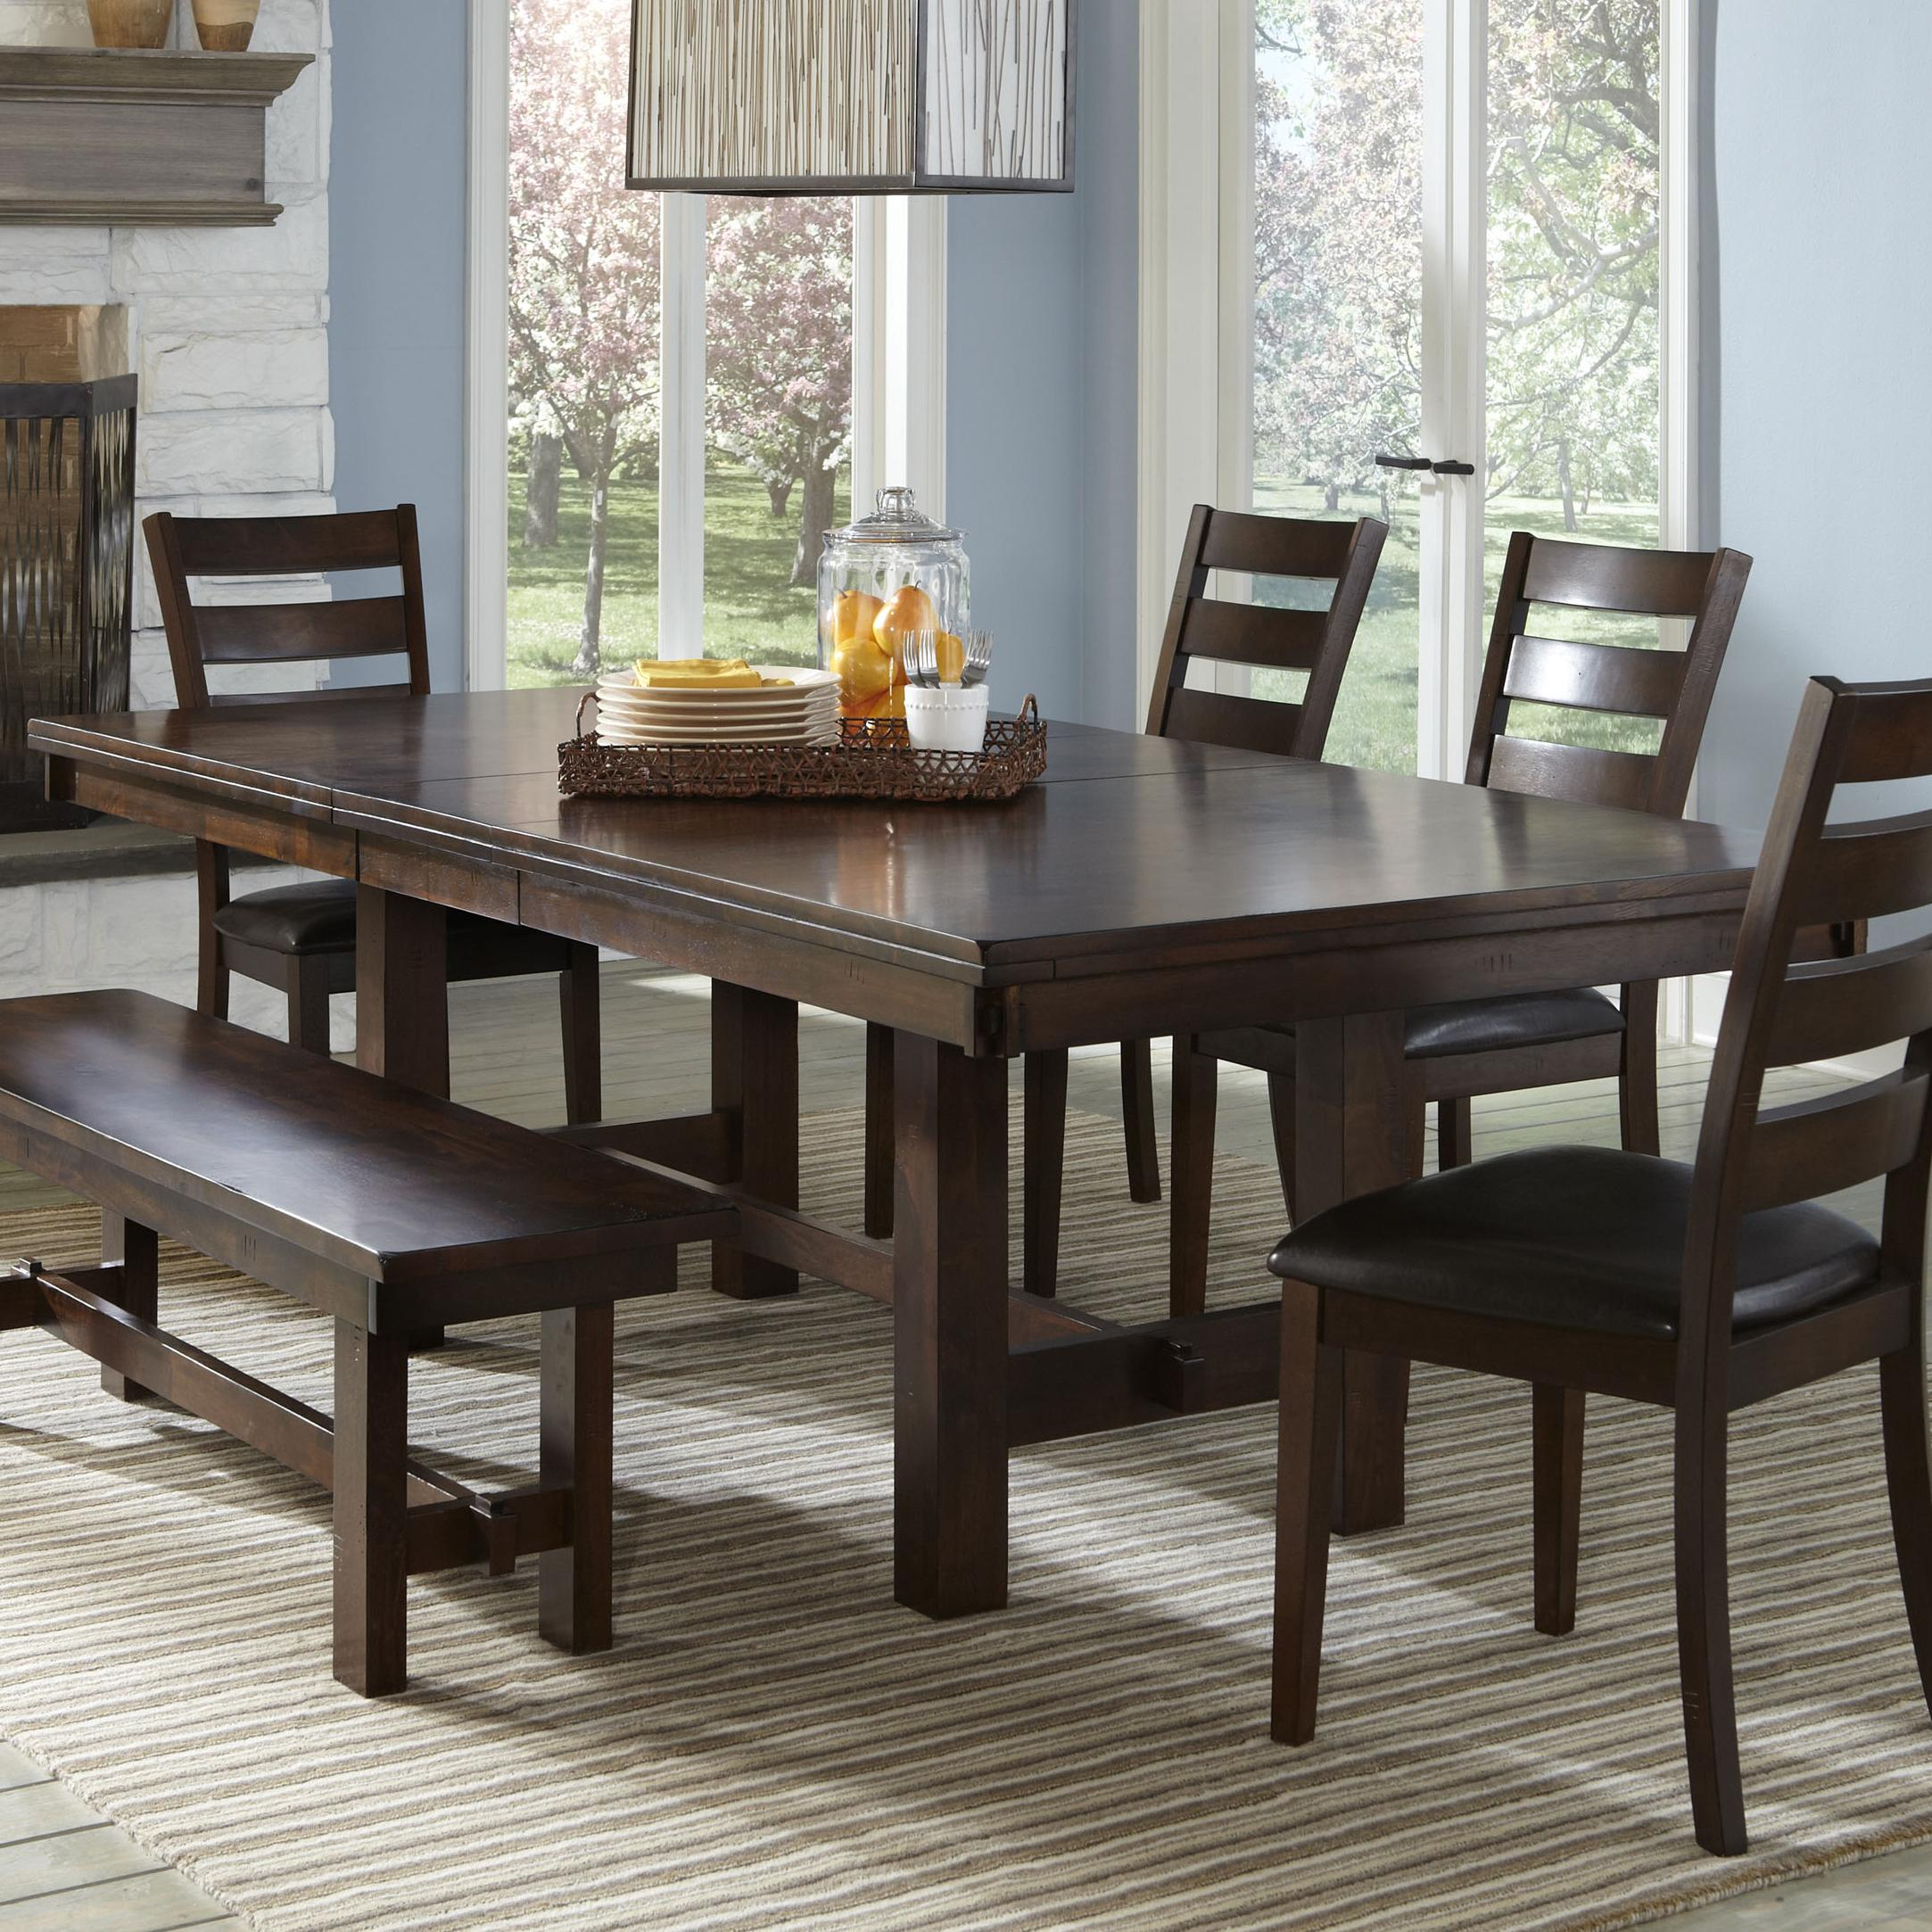 Intercon Kona Trestle Dining Table with Leaf Wayside